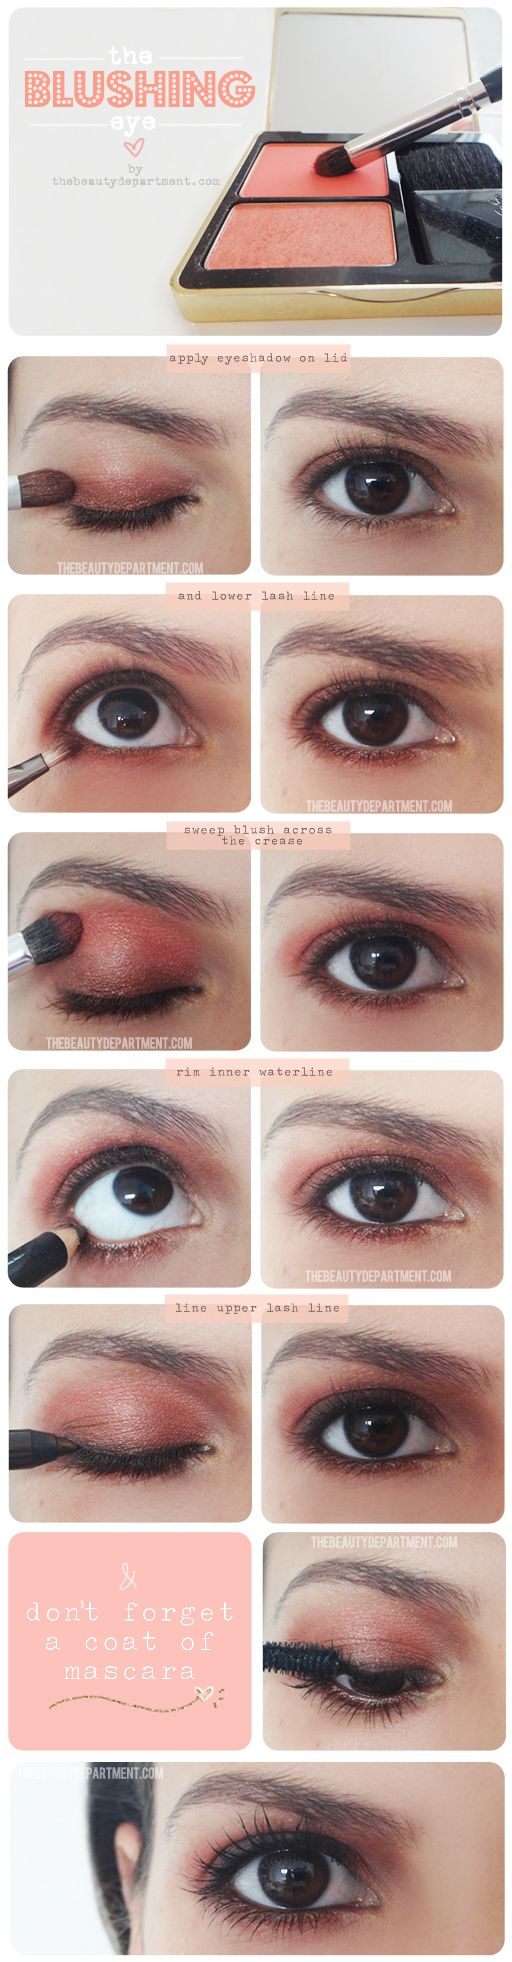 Make an every day eye shadow pop by adding a little blush!